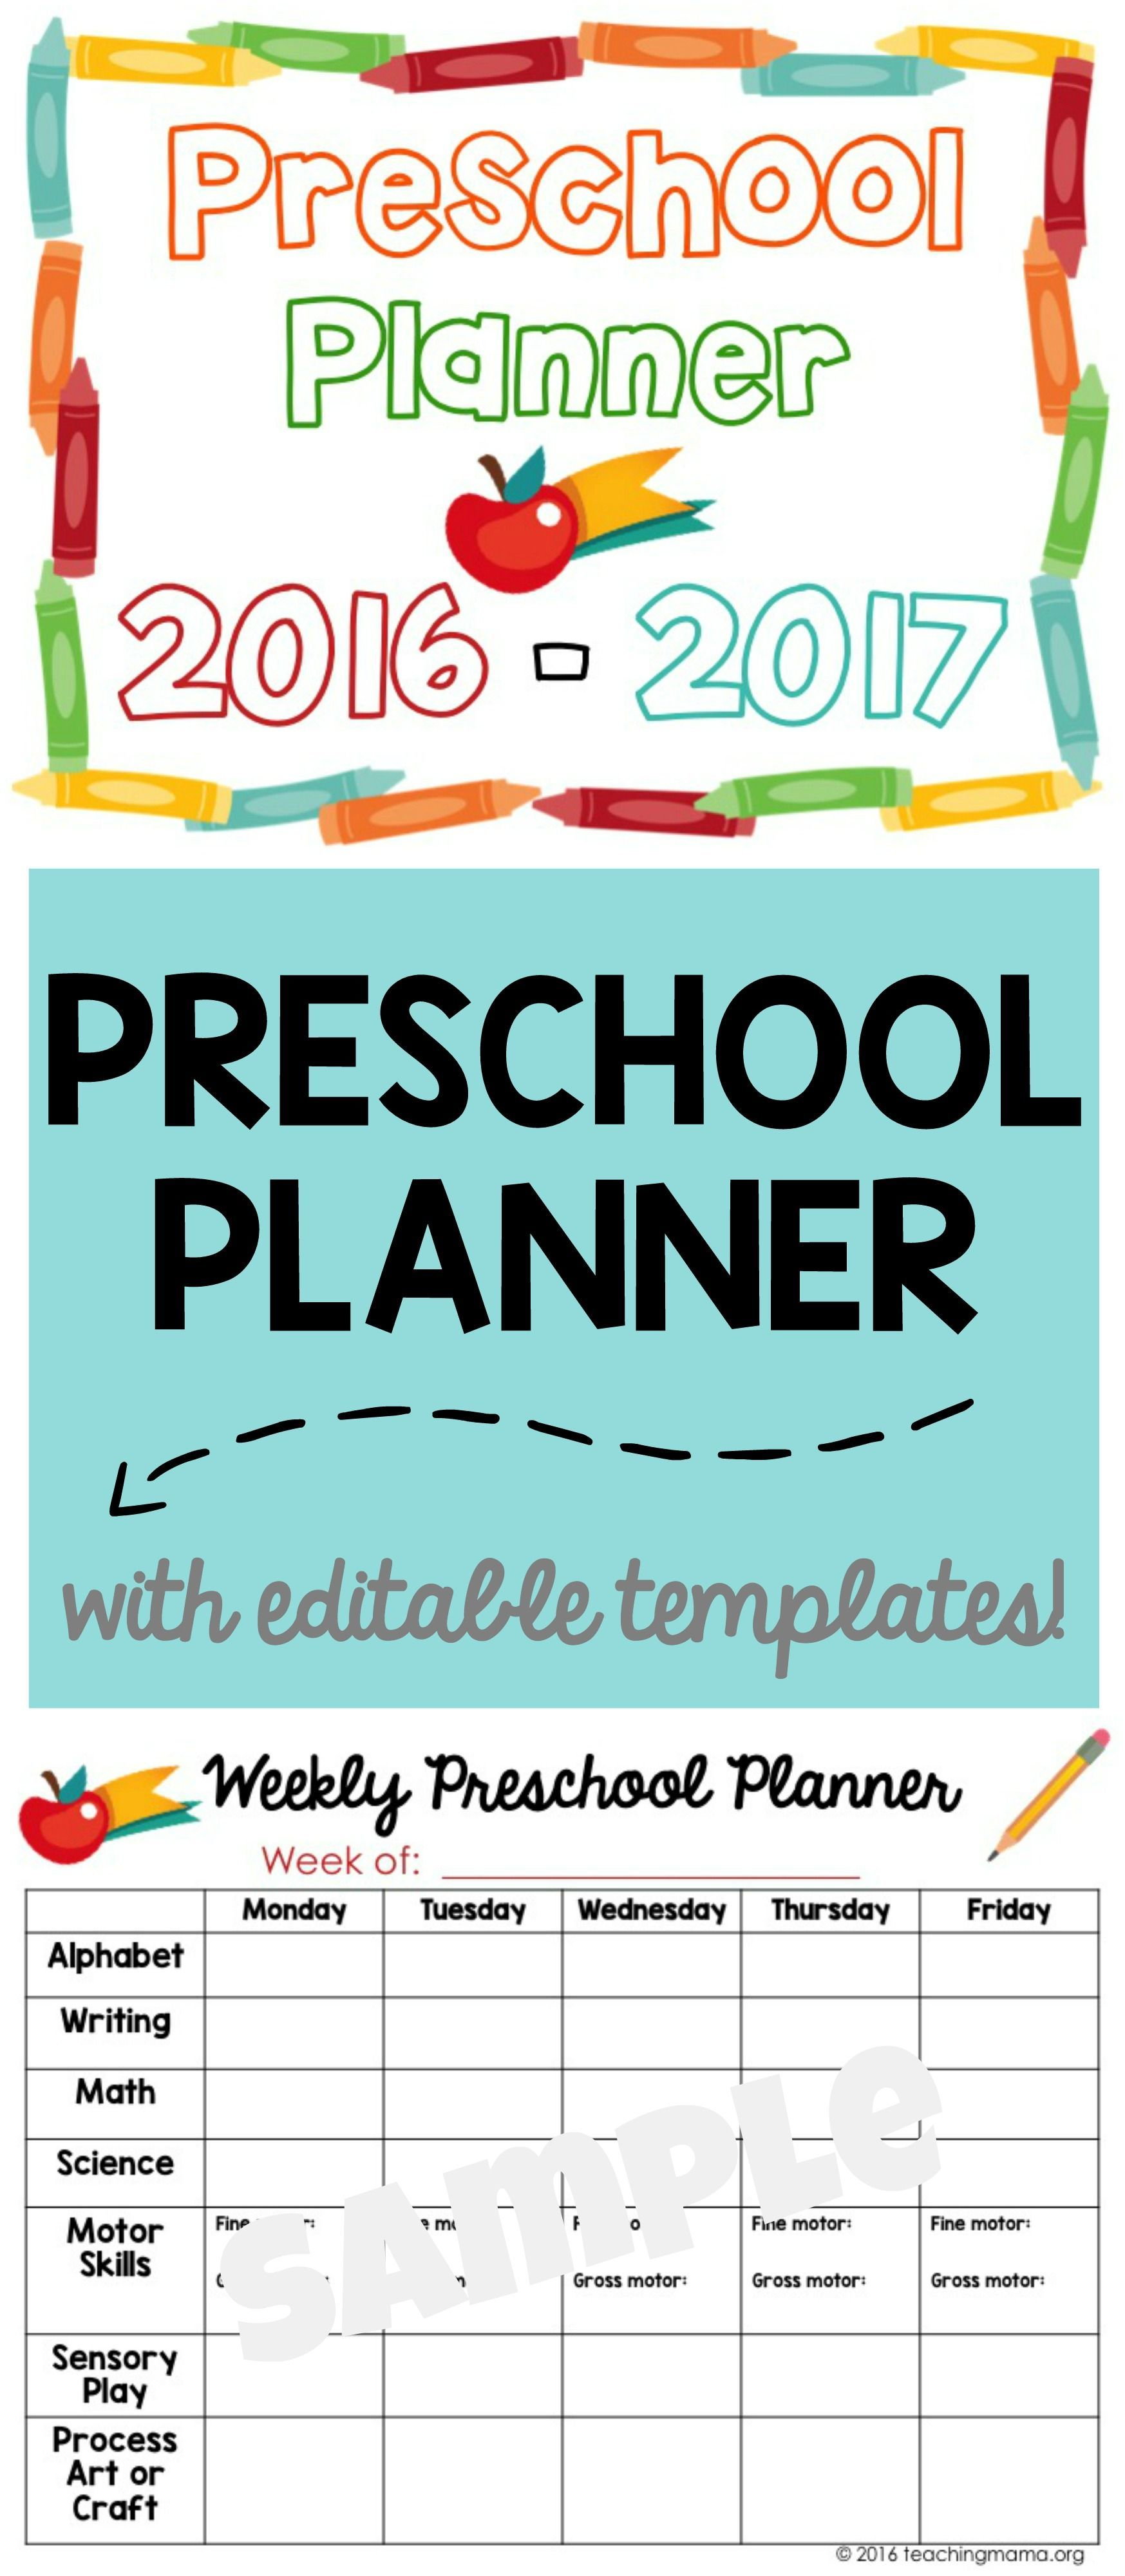 Printable Preschool Planner  Great For Organizing And Planning